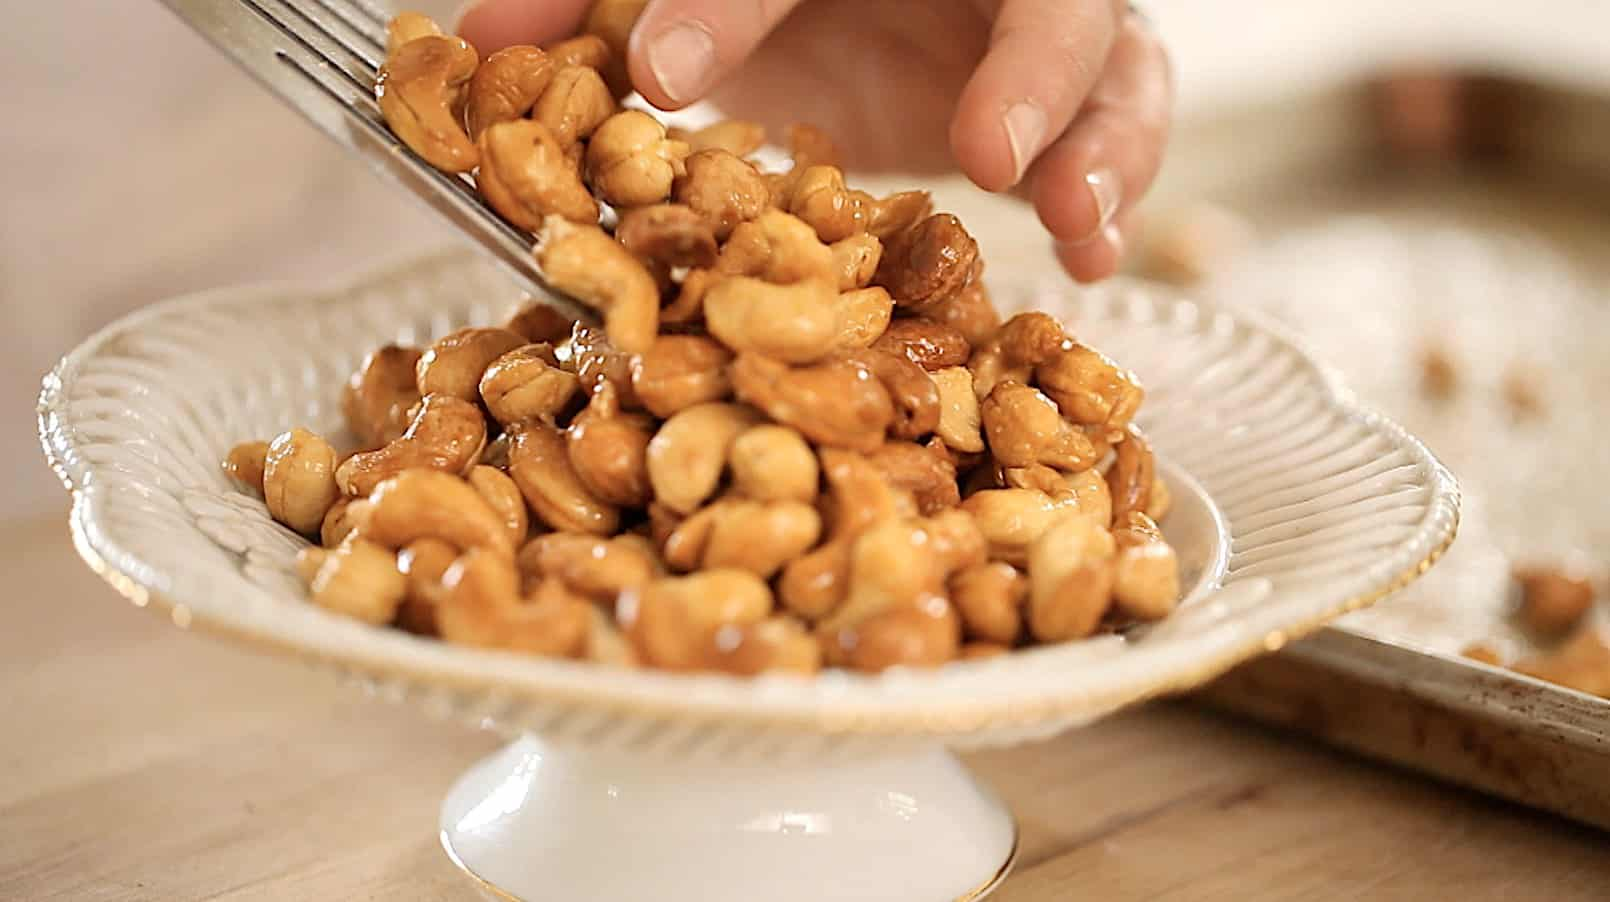 a person adding honey nuts to a bowl